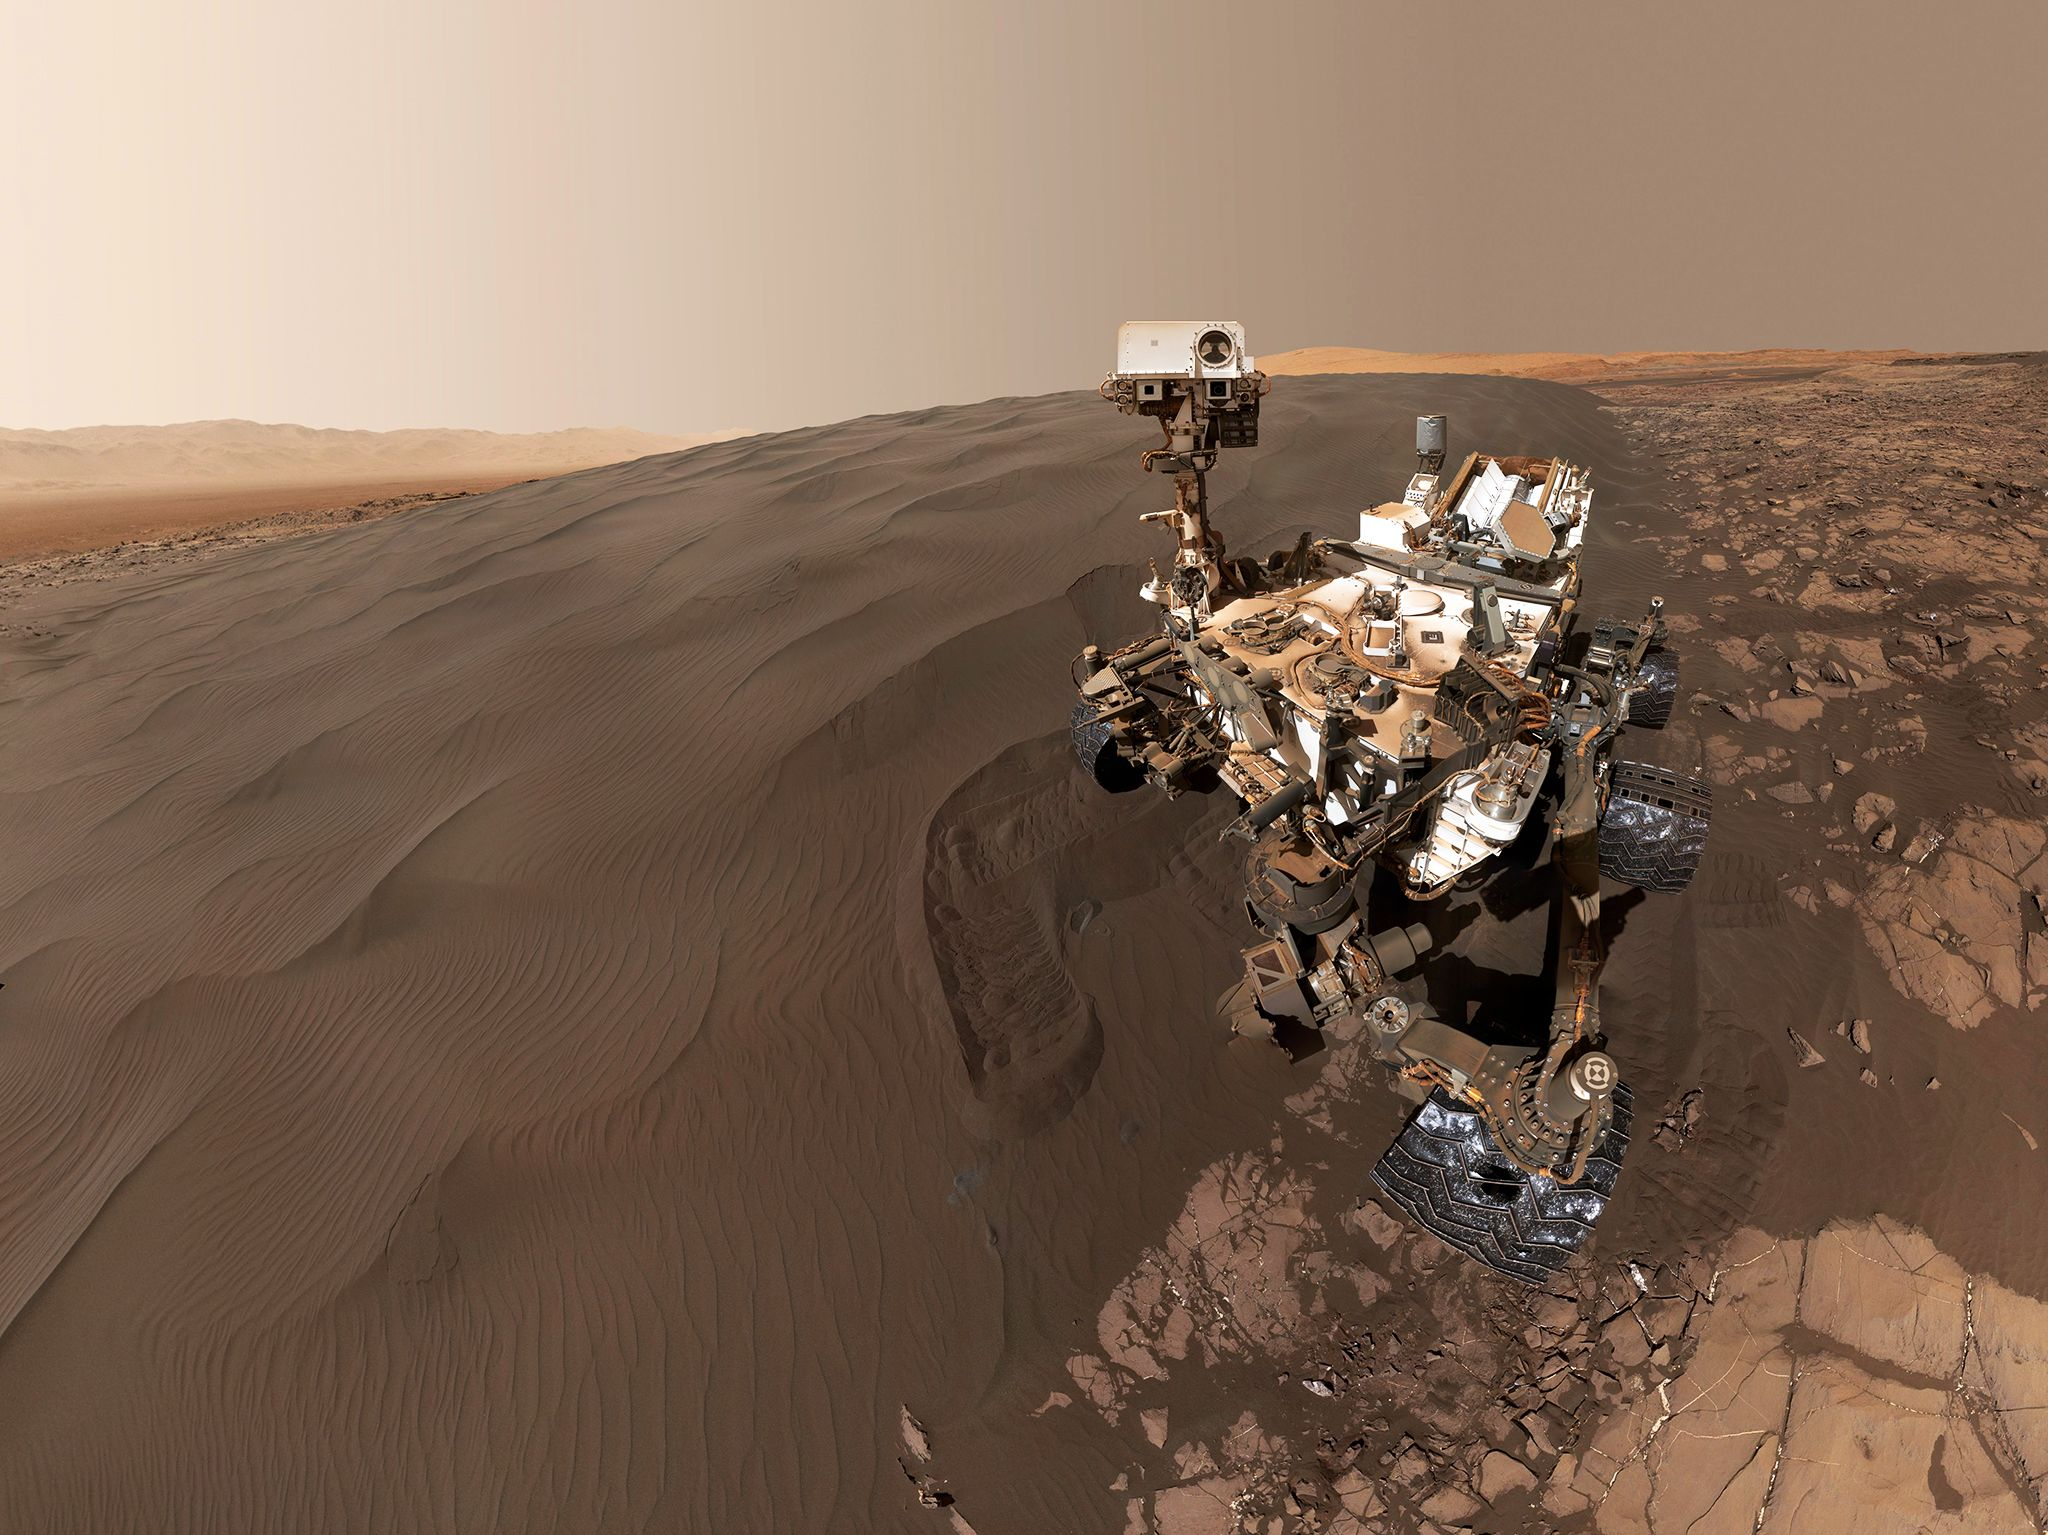 Curiosity selfie at Bagnold Dunes in Gale Crater, sol 1228. This image is from Curiosity: Life... [Foto del giorno - novembre 2018]